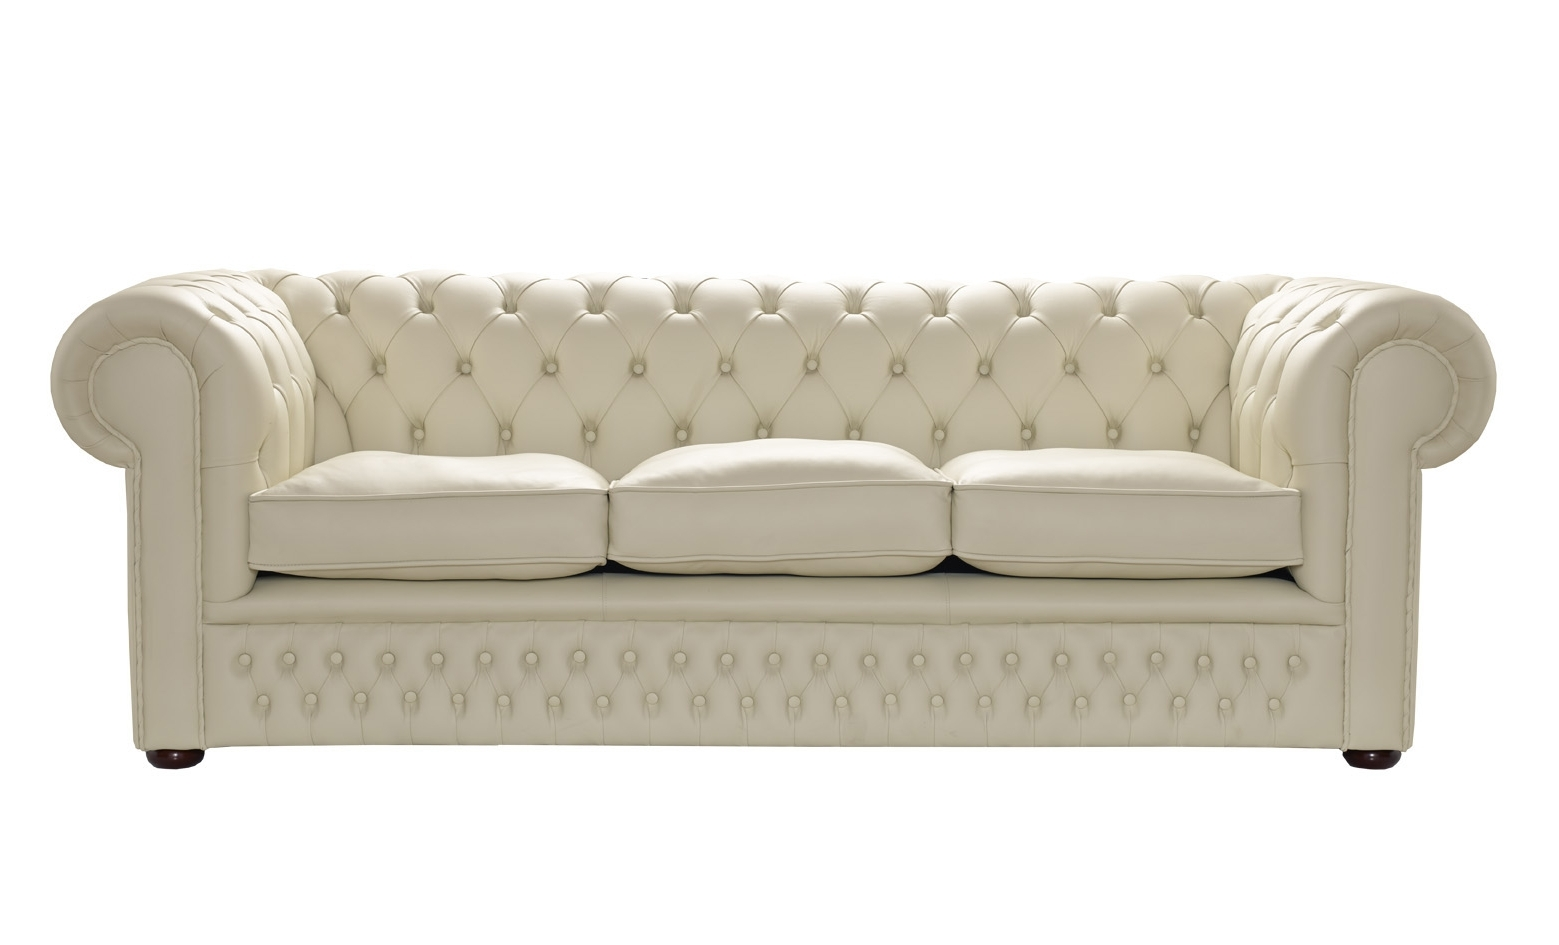 Great Cream Colored Sofa 84 With Additional Sofa Room Ideas With Regarding Most Recently Released Cream Colored Sofas (View 13 of 20)